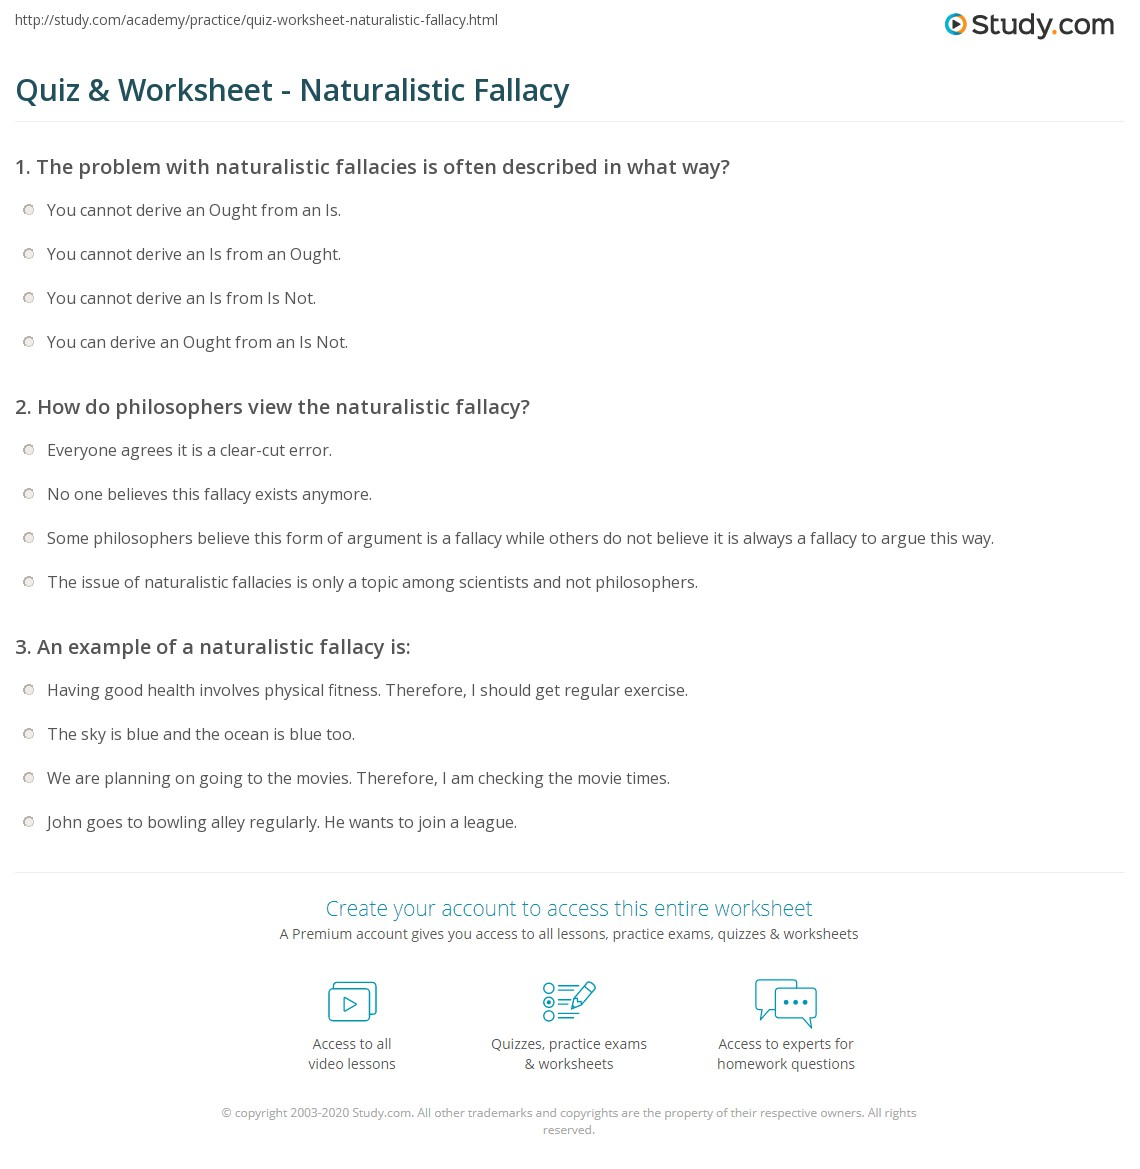 Quiz & Worksheet Naturalistic Fallacy